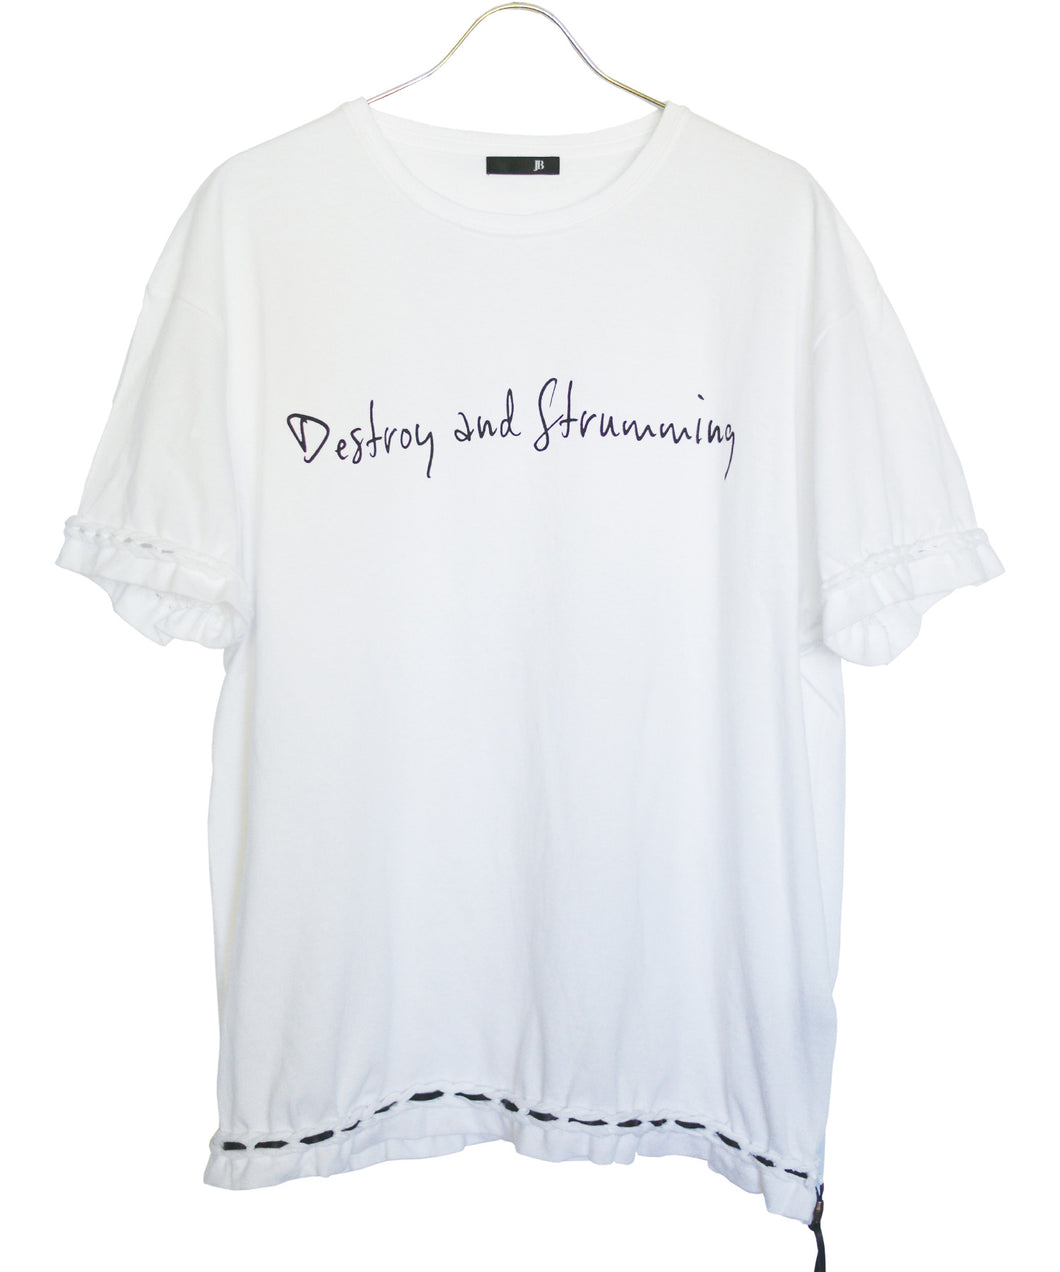 STRUM × JOHNNY BUSINESS『Destroy and Strumming』Tシャツ / ホワイト